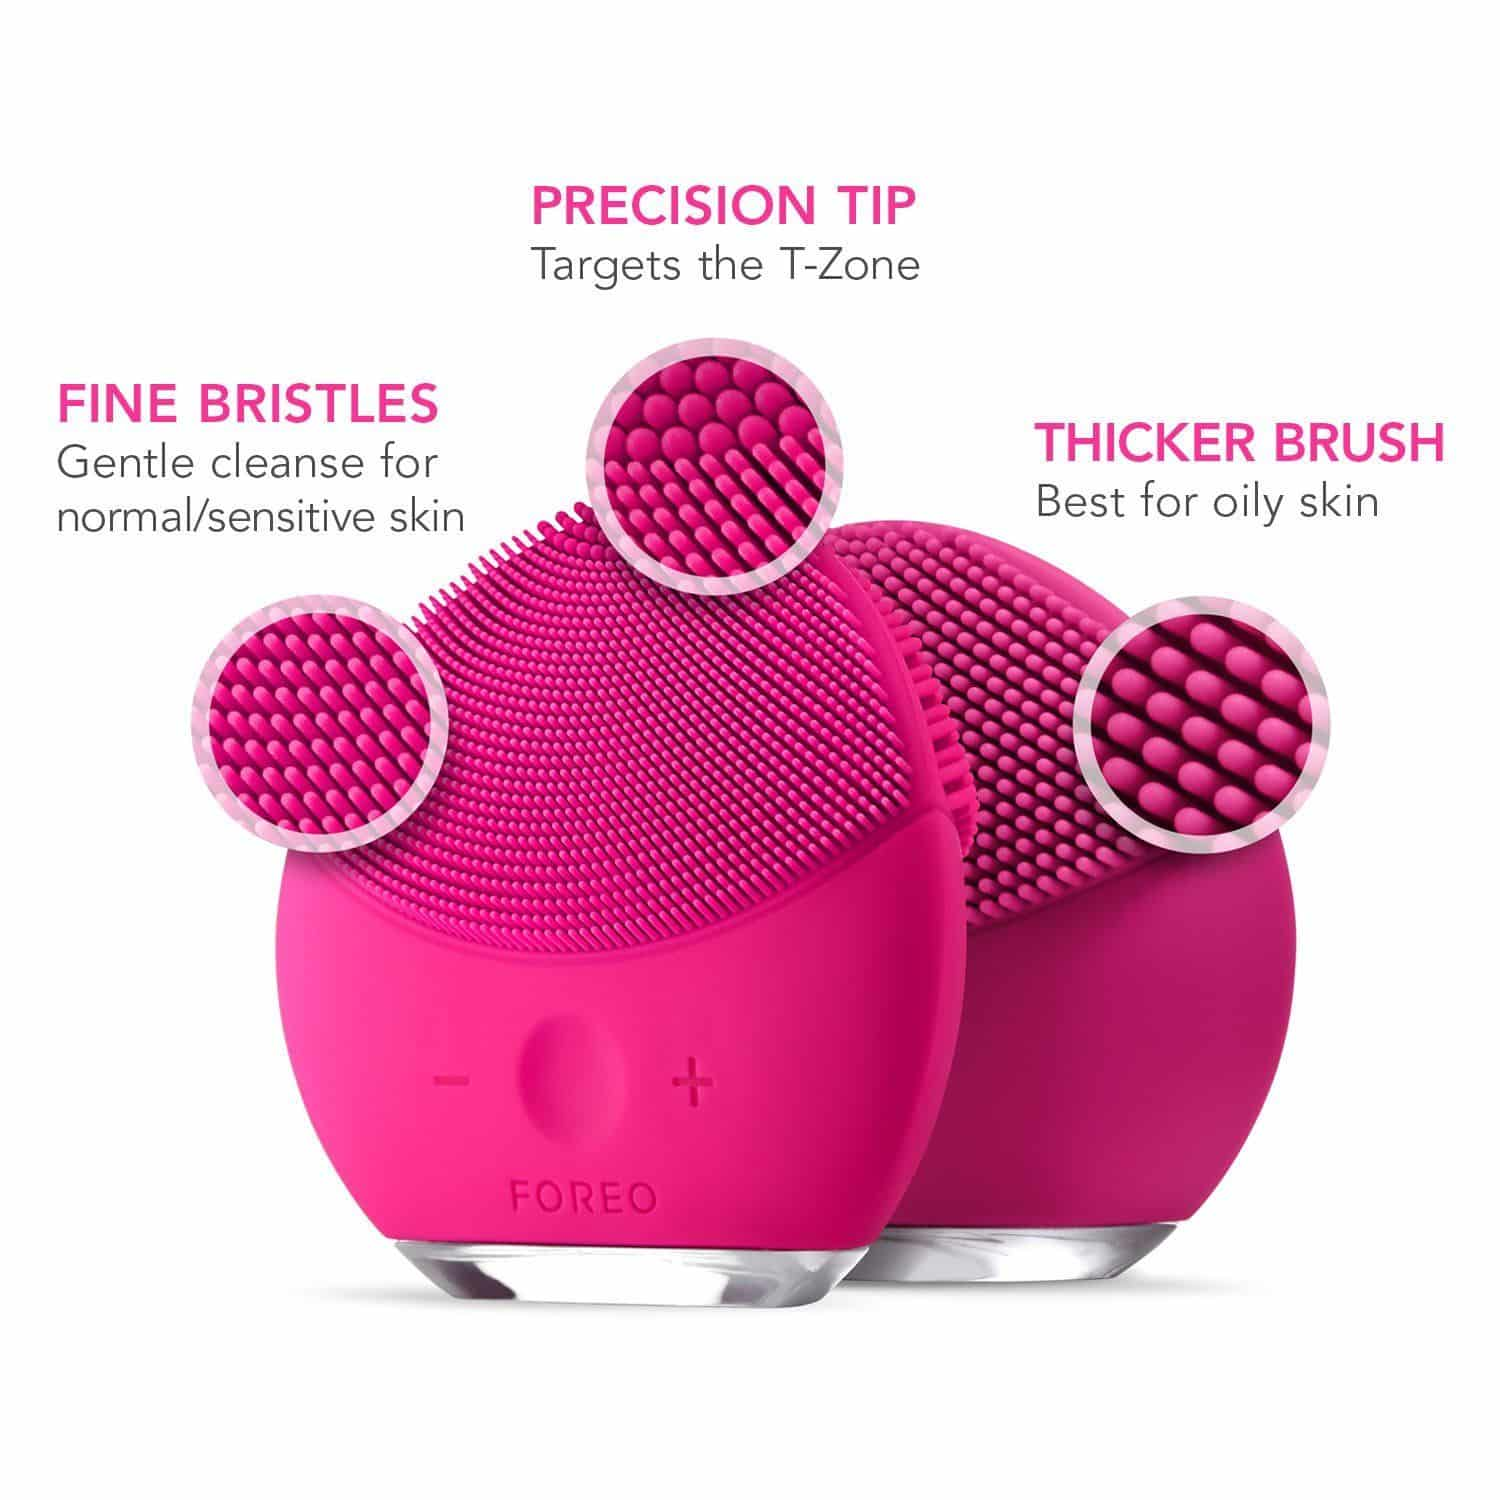 In this Foreo Luna Review